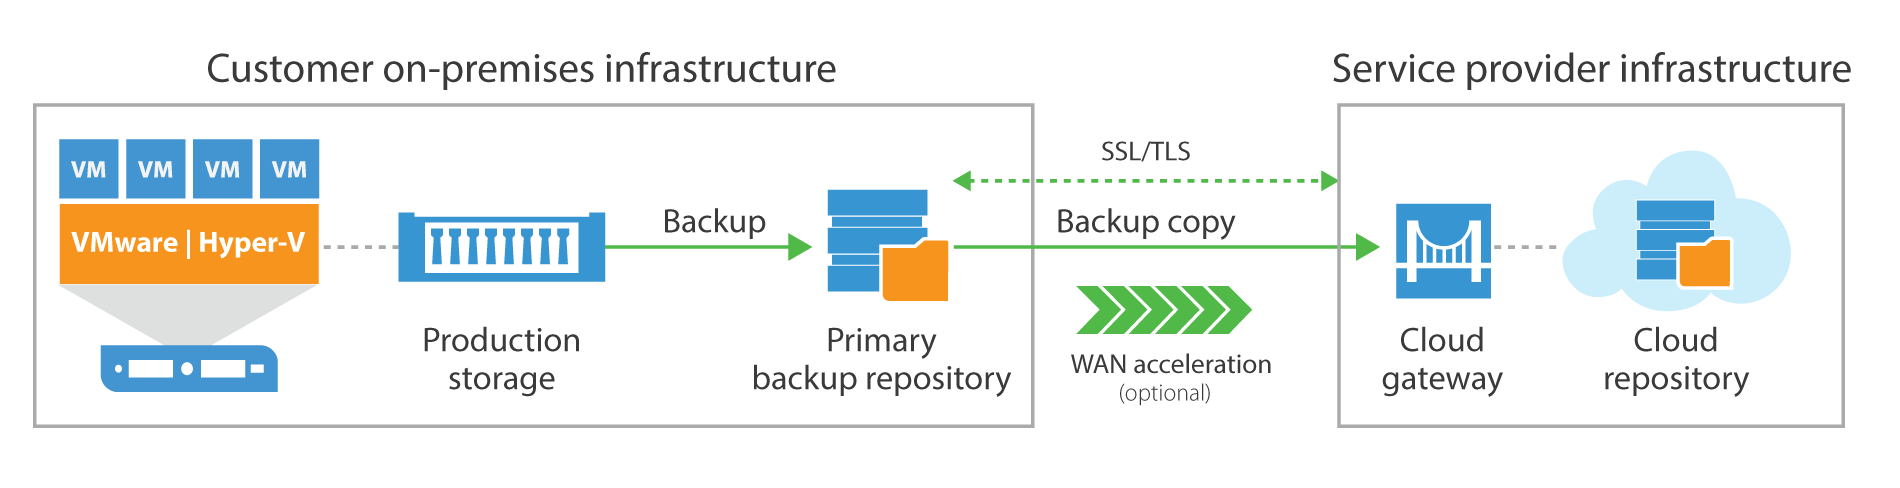 Use a backup job to store data on-premises for fast local restores, then use a backup copy job to send data off site to the service provider's cloud repository for risk mitigation